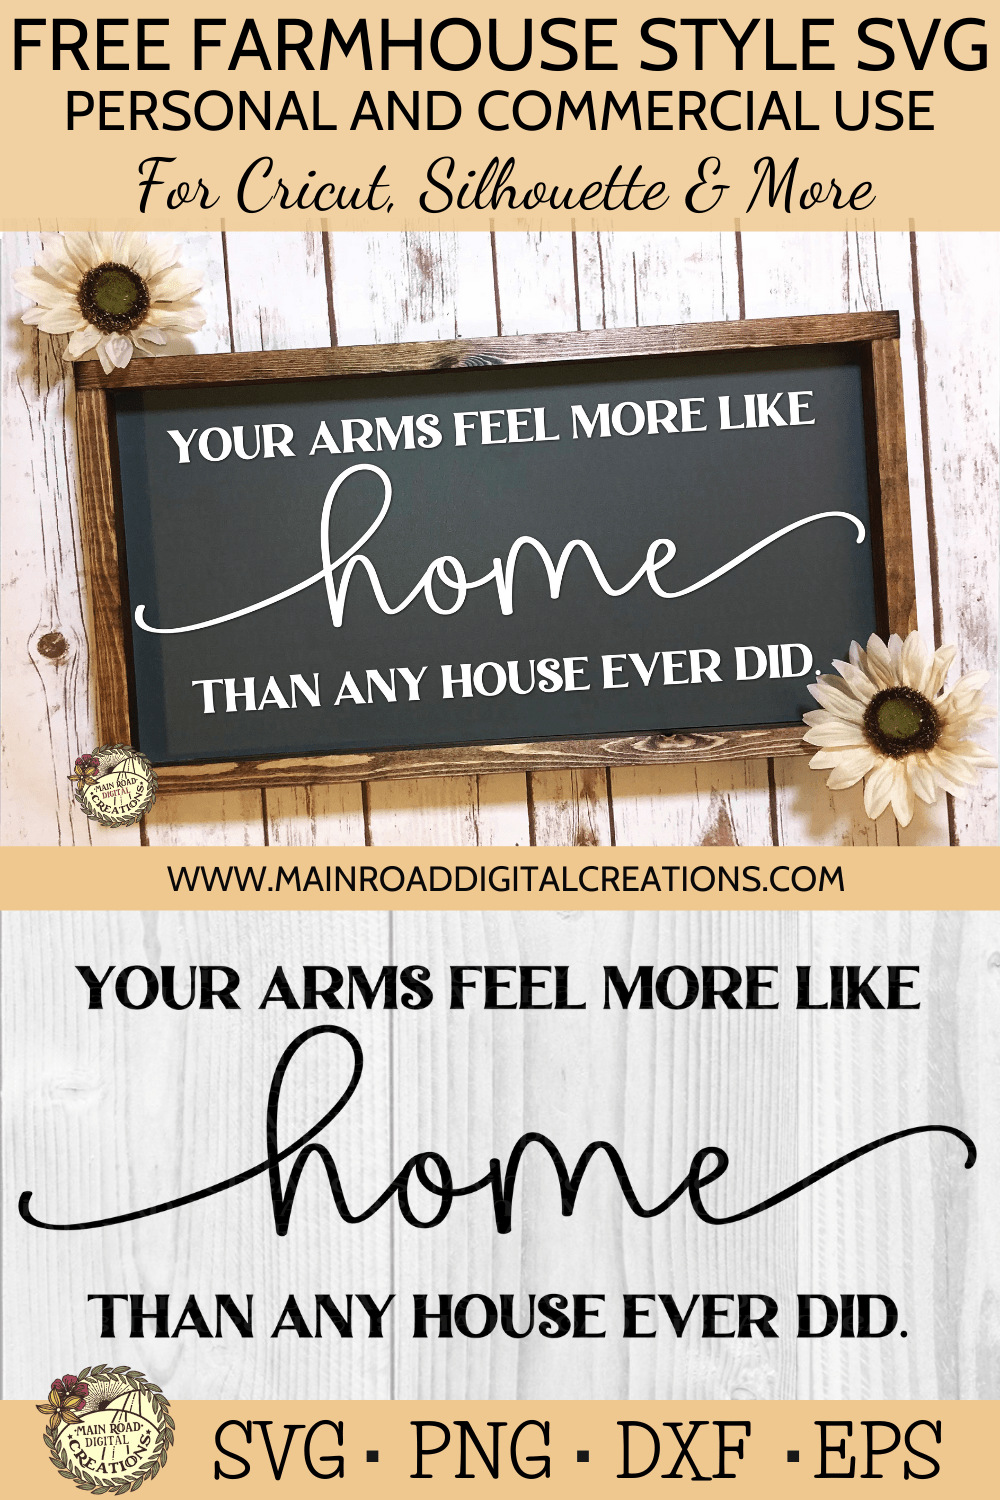 FREE FARMHOUSE STYLE SVG, FREE HOME SVG, CHALKBOARD SIGN